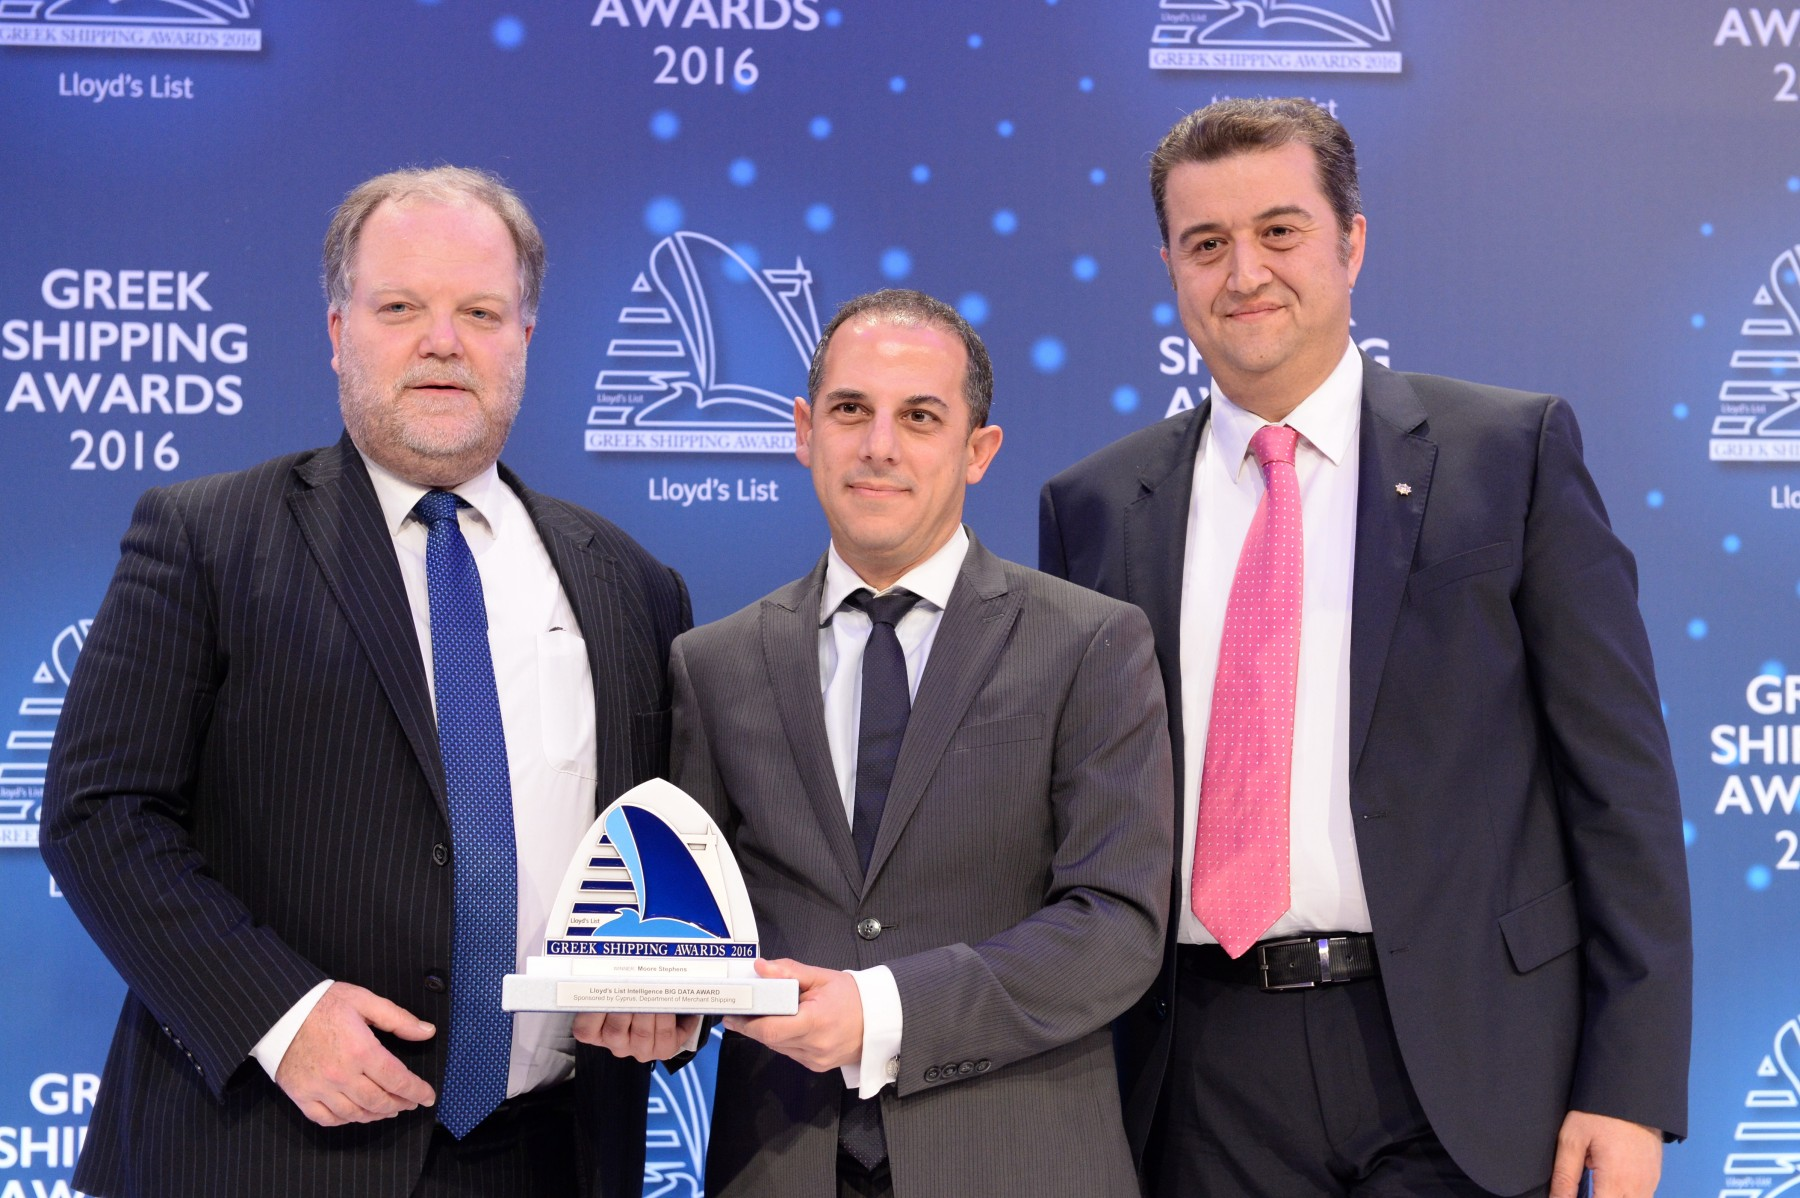 Cyprus' Transport, Communications and Works Minister Marios Demetriades (centre) presenting the Lloyd's List Intelligence Big Data Award to Mr. Richard Greiner and Costas Constantinou of Moore Stephens. The Award was sponsored by the Department of Merchant Shipping of Cyprus.